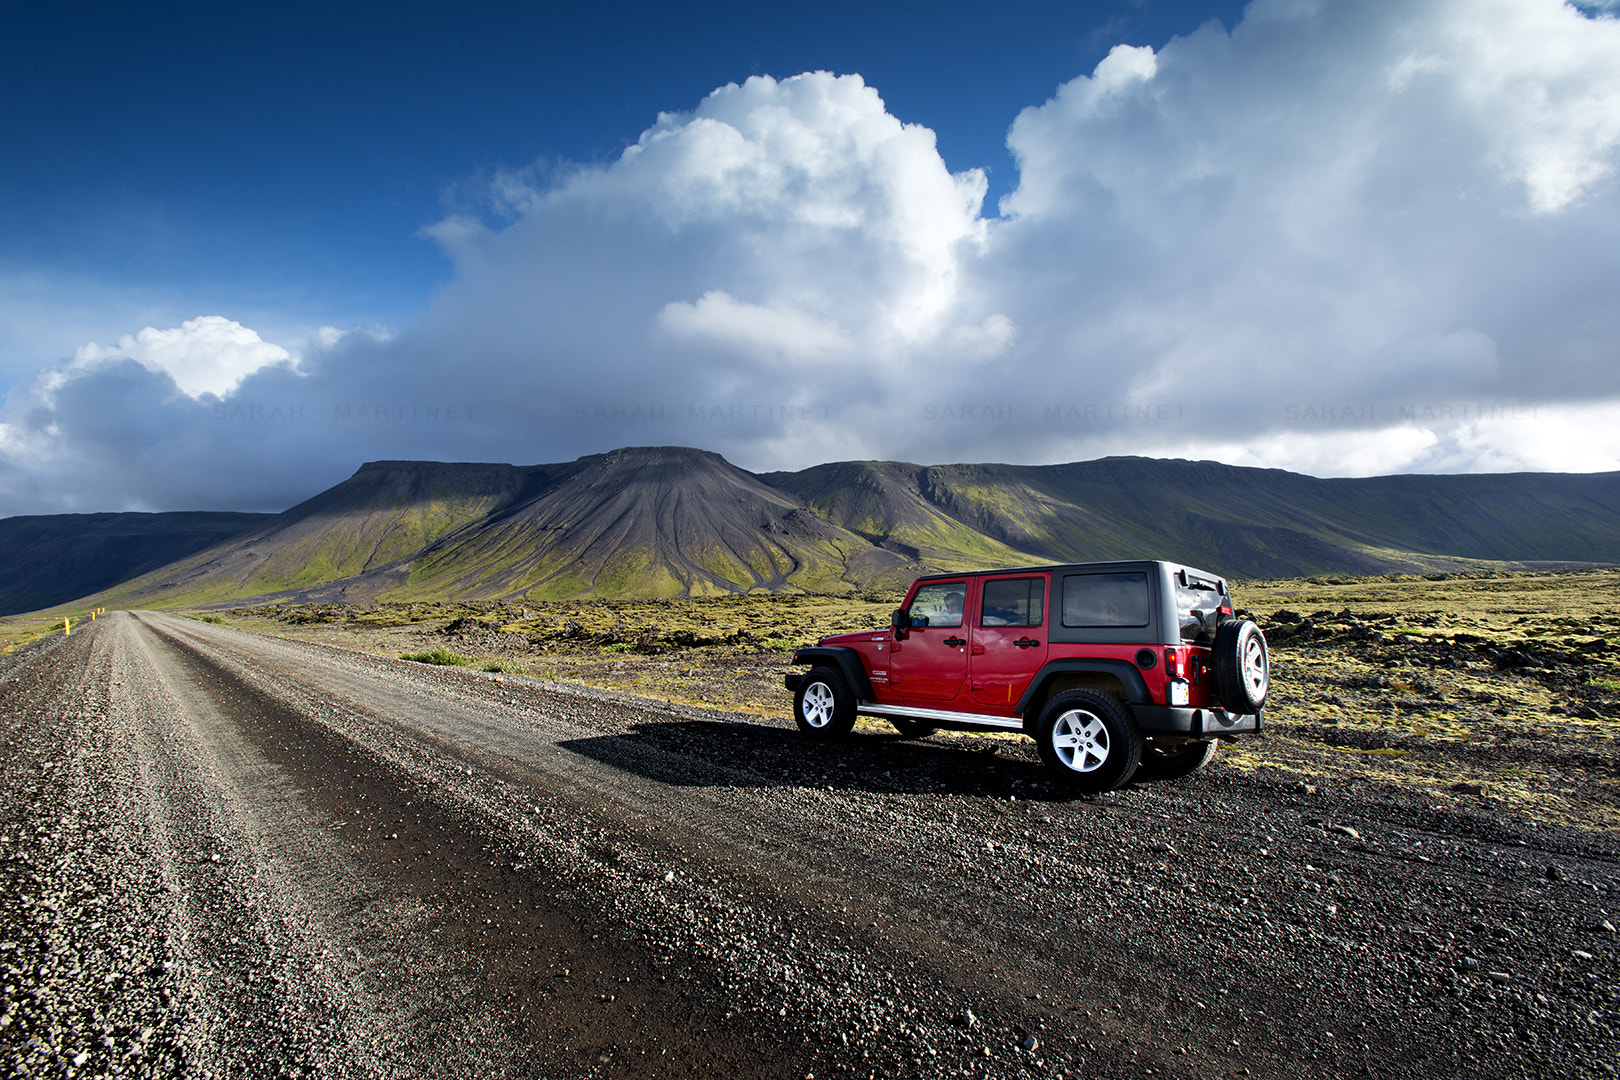 Photograph Let's go on the f roads by Sarah Martinet on 500px